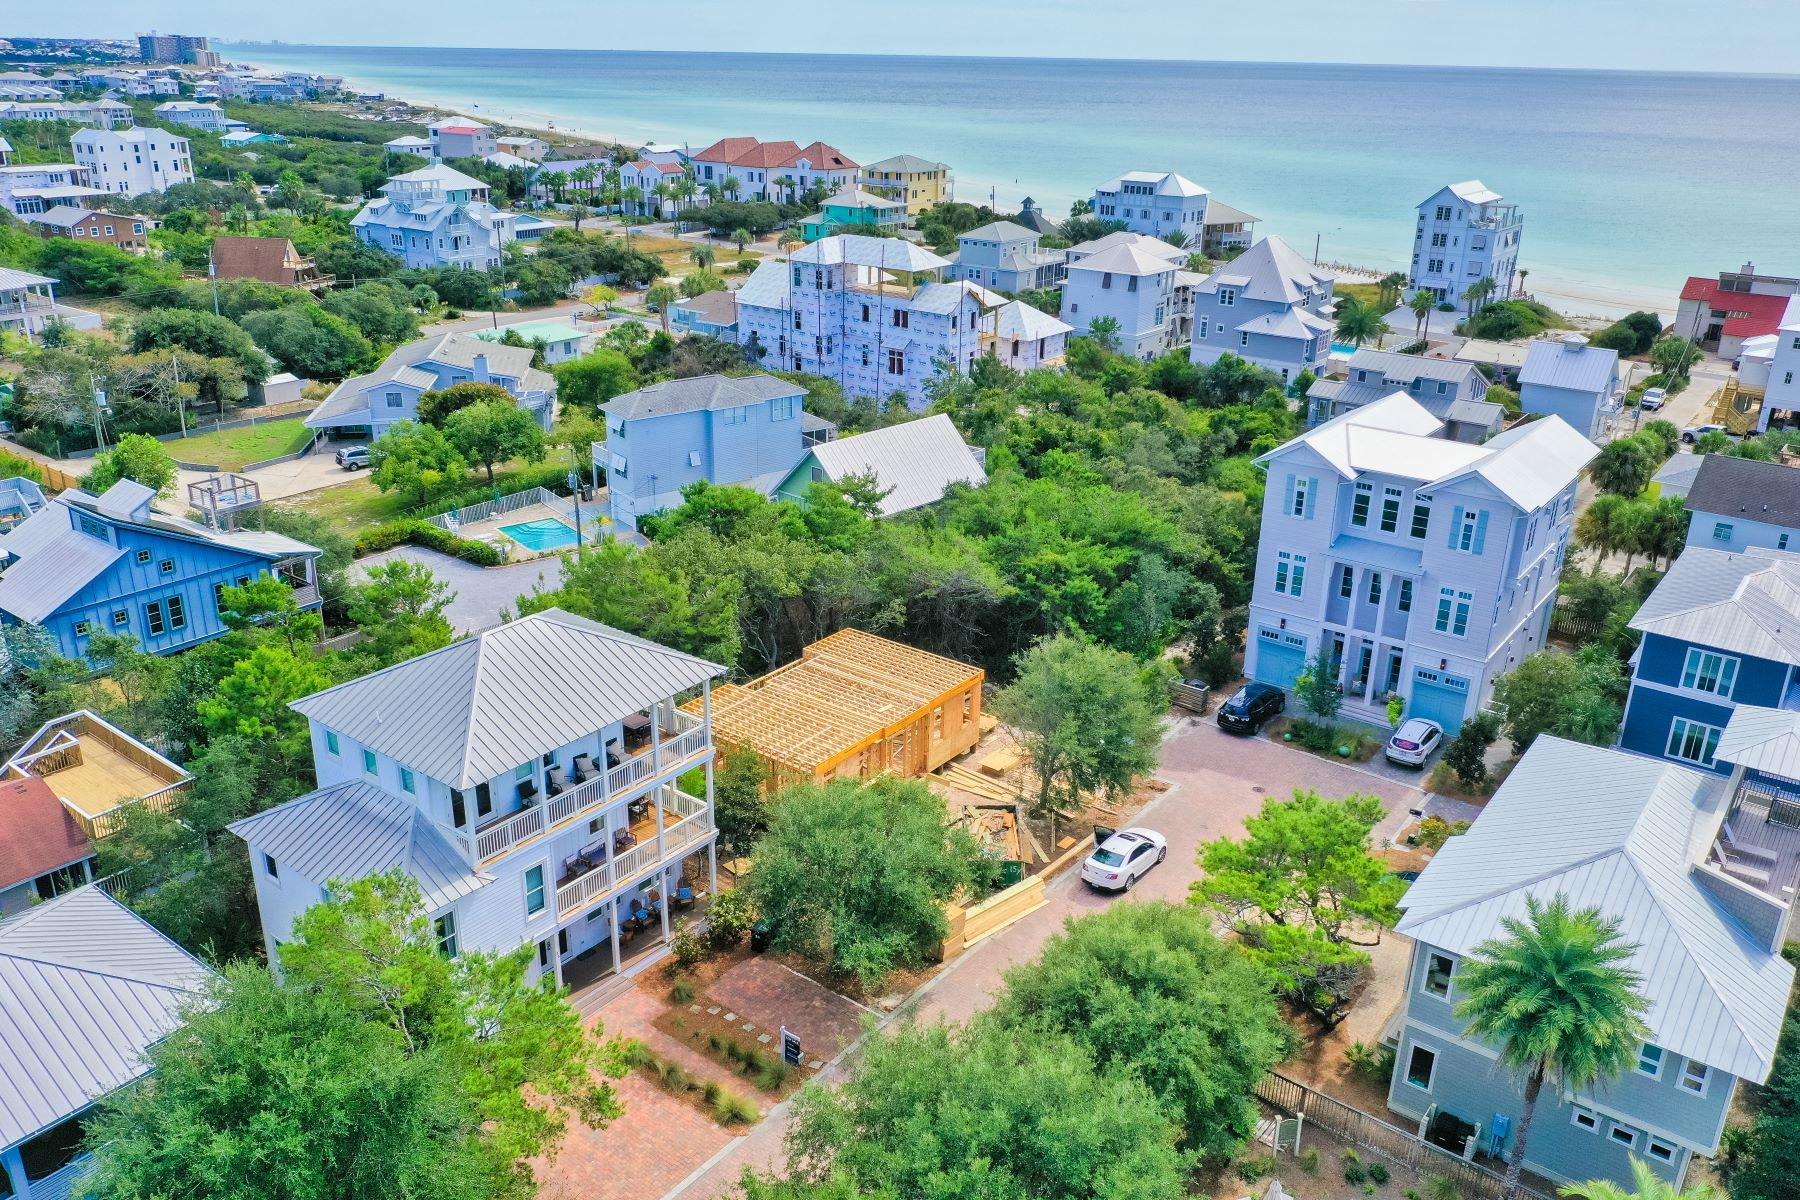 Single Family Homes for Sale at Luxurious Gulf View Home Close to Rosemary with Low Dues 25 Wild Dunes Way Inlet Beach, Florida 32461 United States